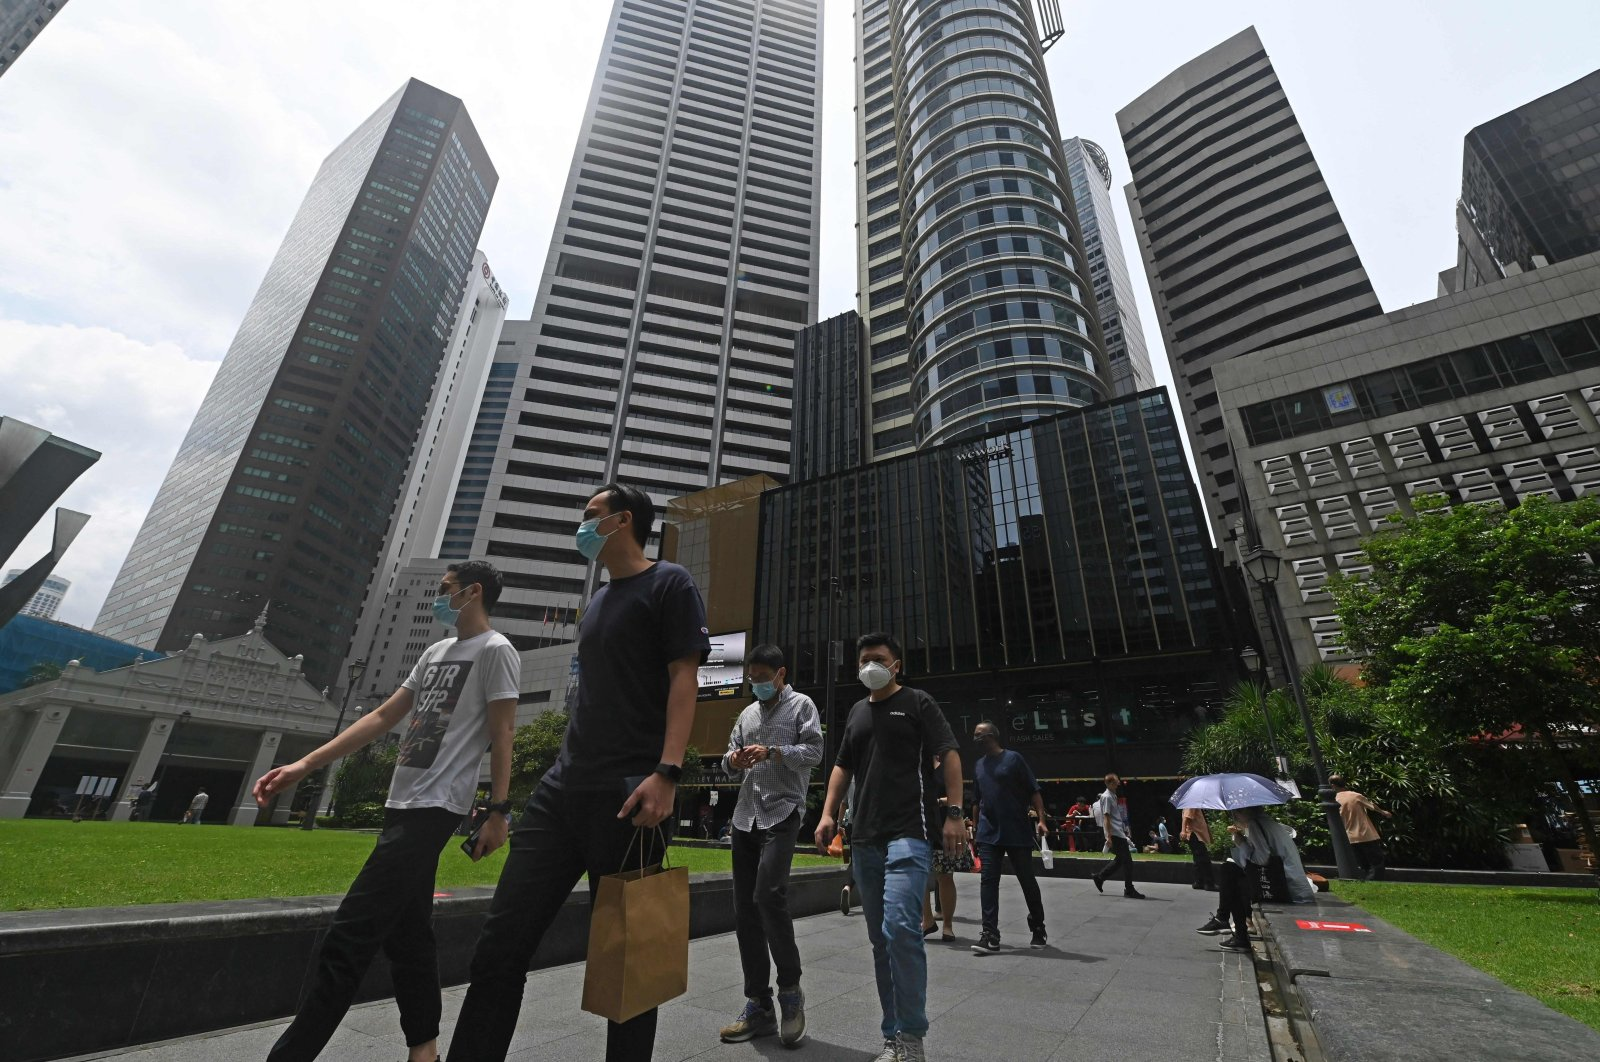 Office workers walk outside during their lunch break at Raffles Place financial business district in Singapore, Aug. 5, 2021. (AFP Photo)